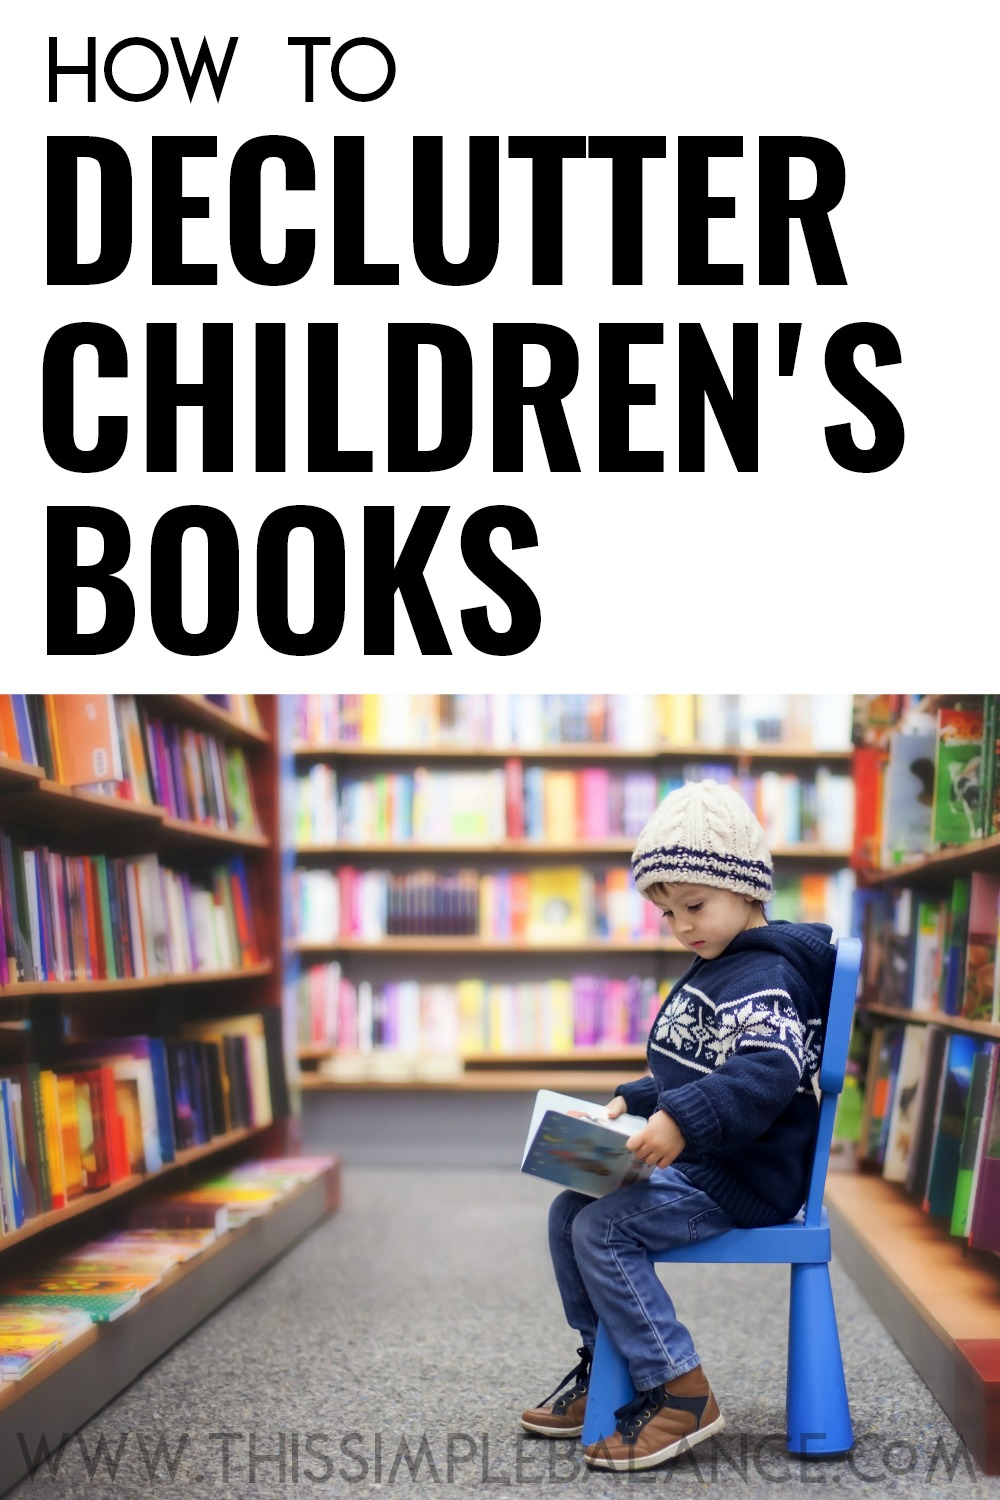 Decluttering Kids' Books: Parents are afraid that decluttering books will be harmful to kids, when it's the exact opposite! Learn how to overcome those fears, and get the questions you need to declutter your children's books with confidence.